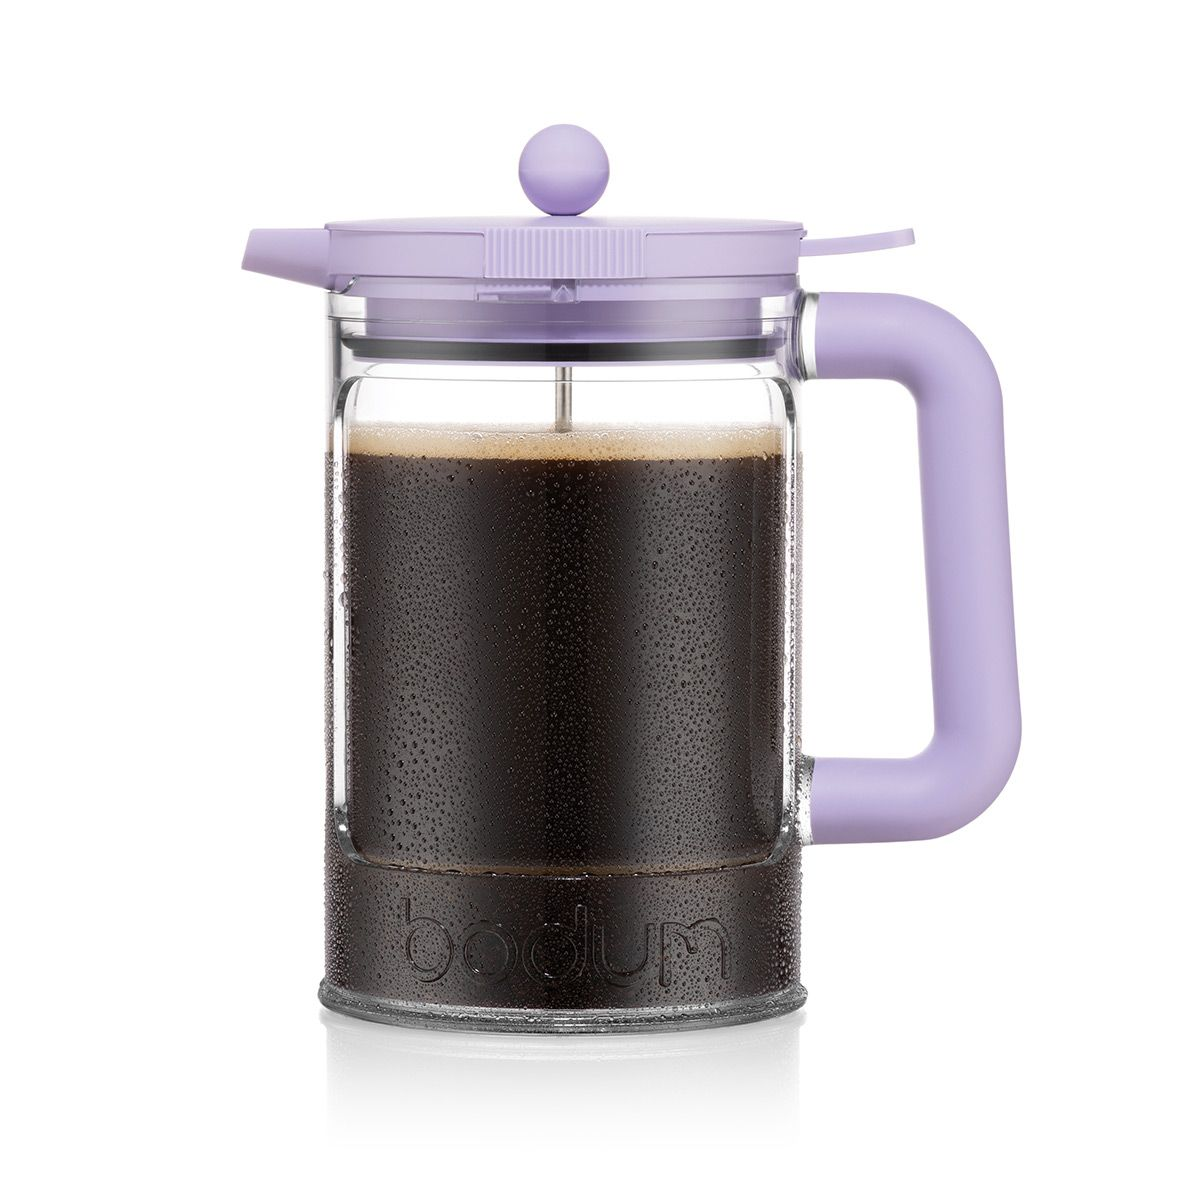 cold brew coffee maker BEAN